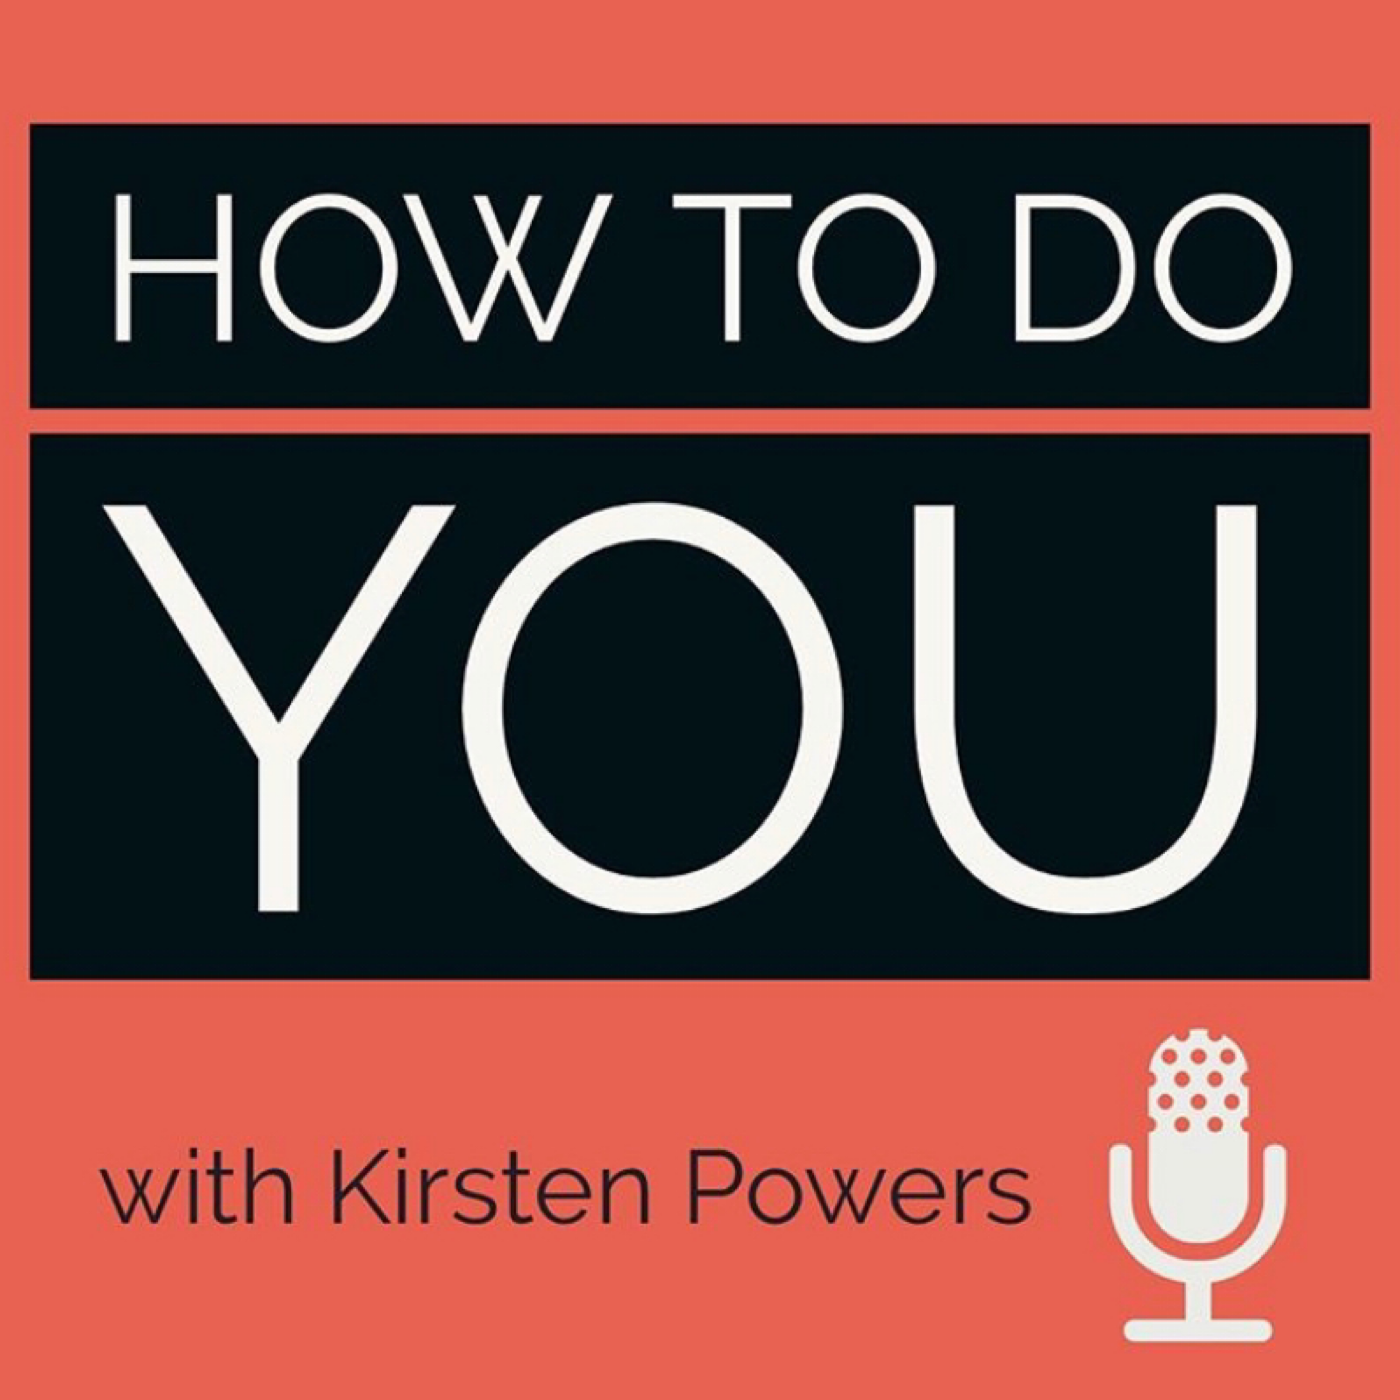 Processing Grief During the Coronavirus with Grief Expert David Kessler